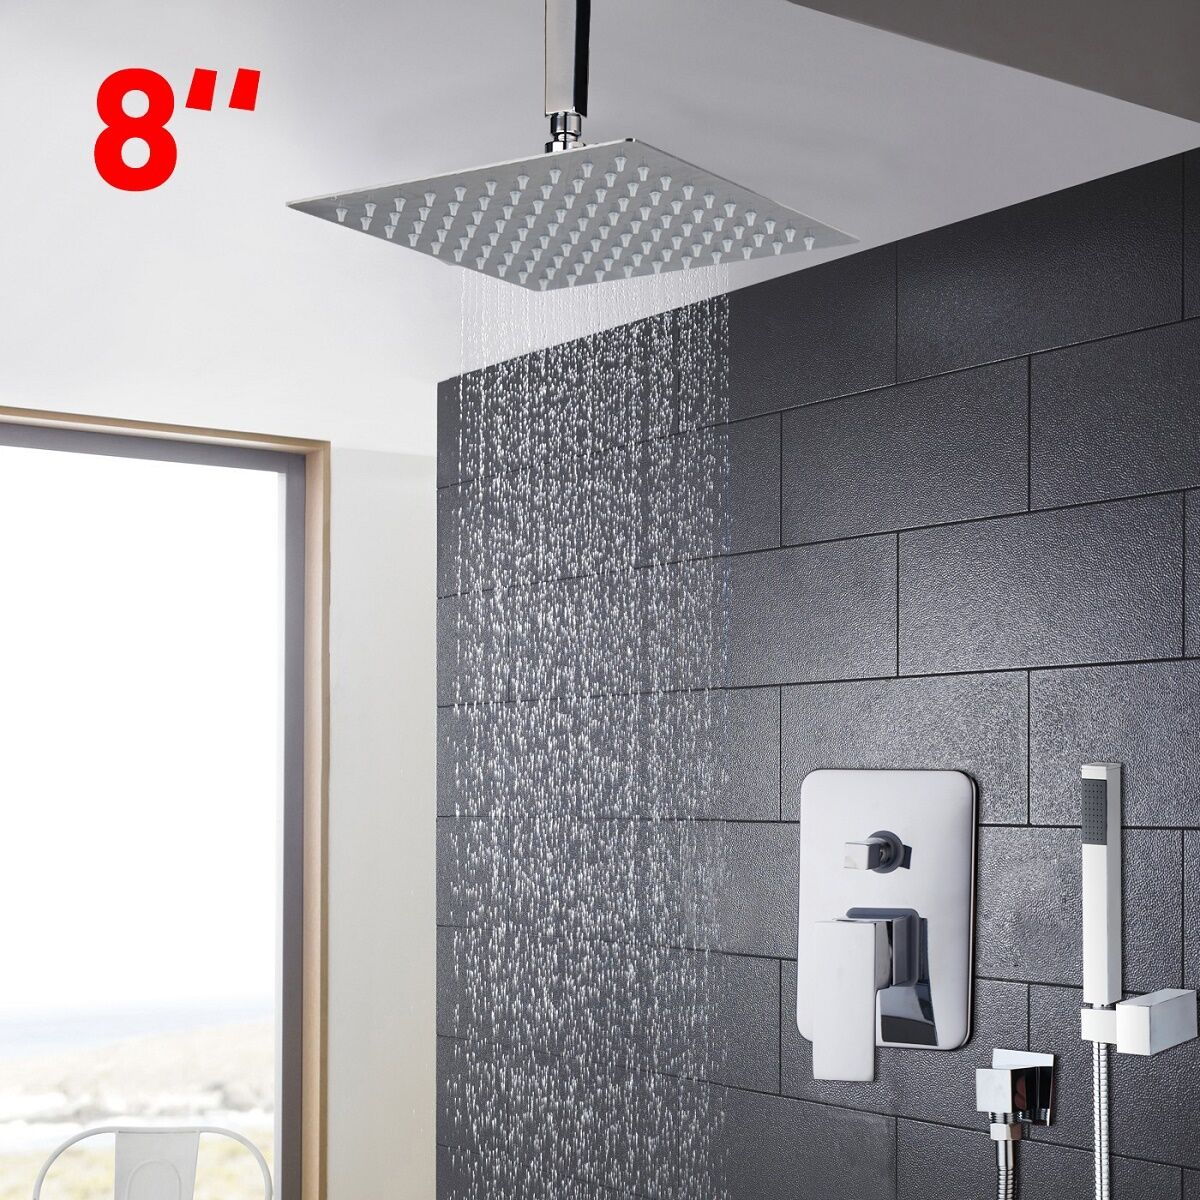 Details About Ceiling Mounted Bathroom Slim Overhead Chrome 8 Rain Shower Faucet Mixer Tap